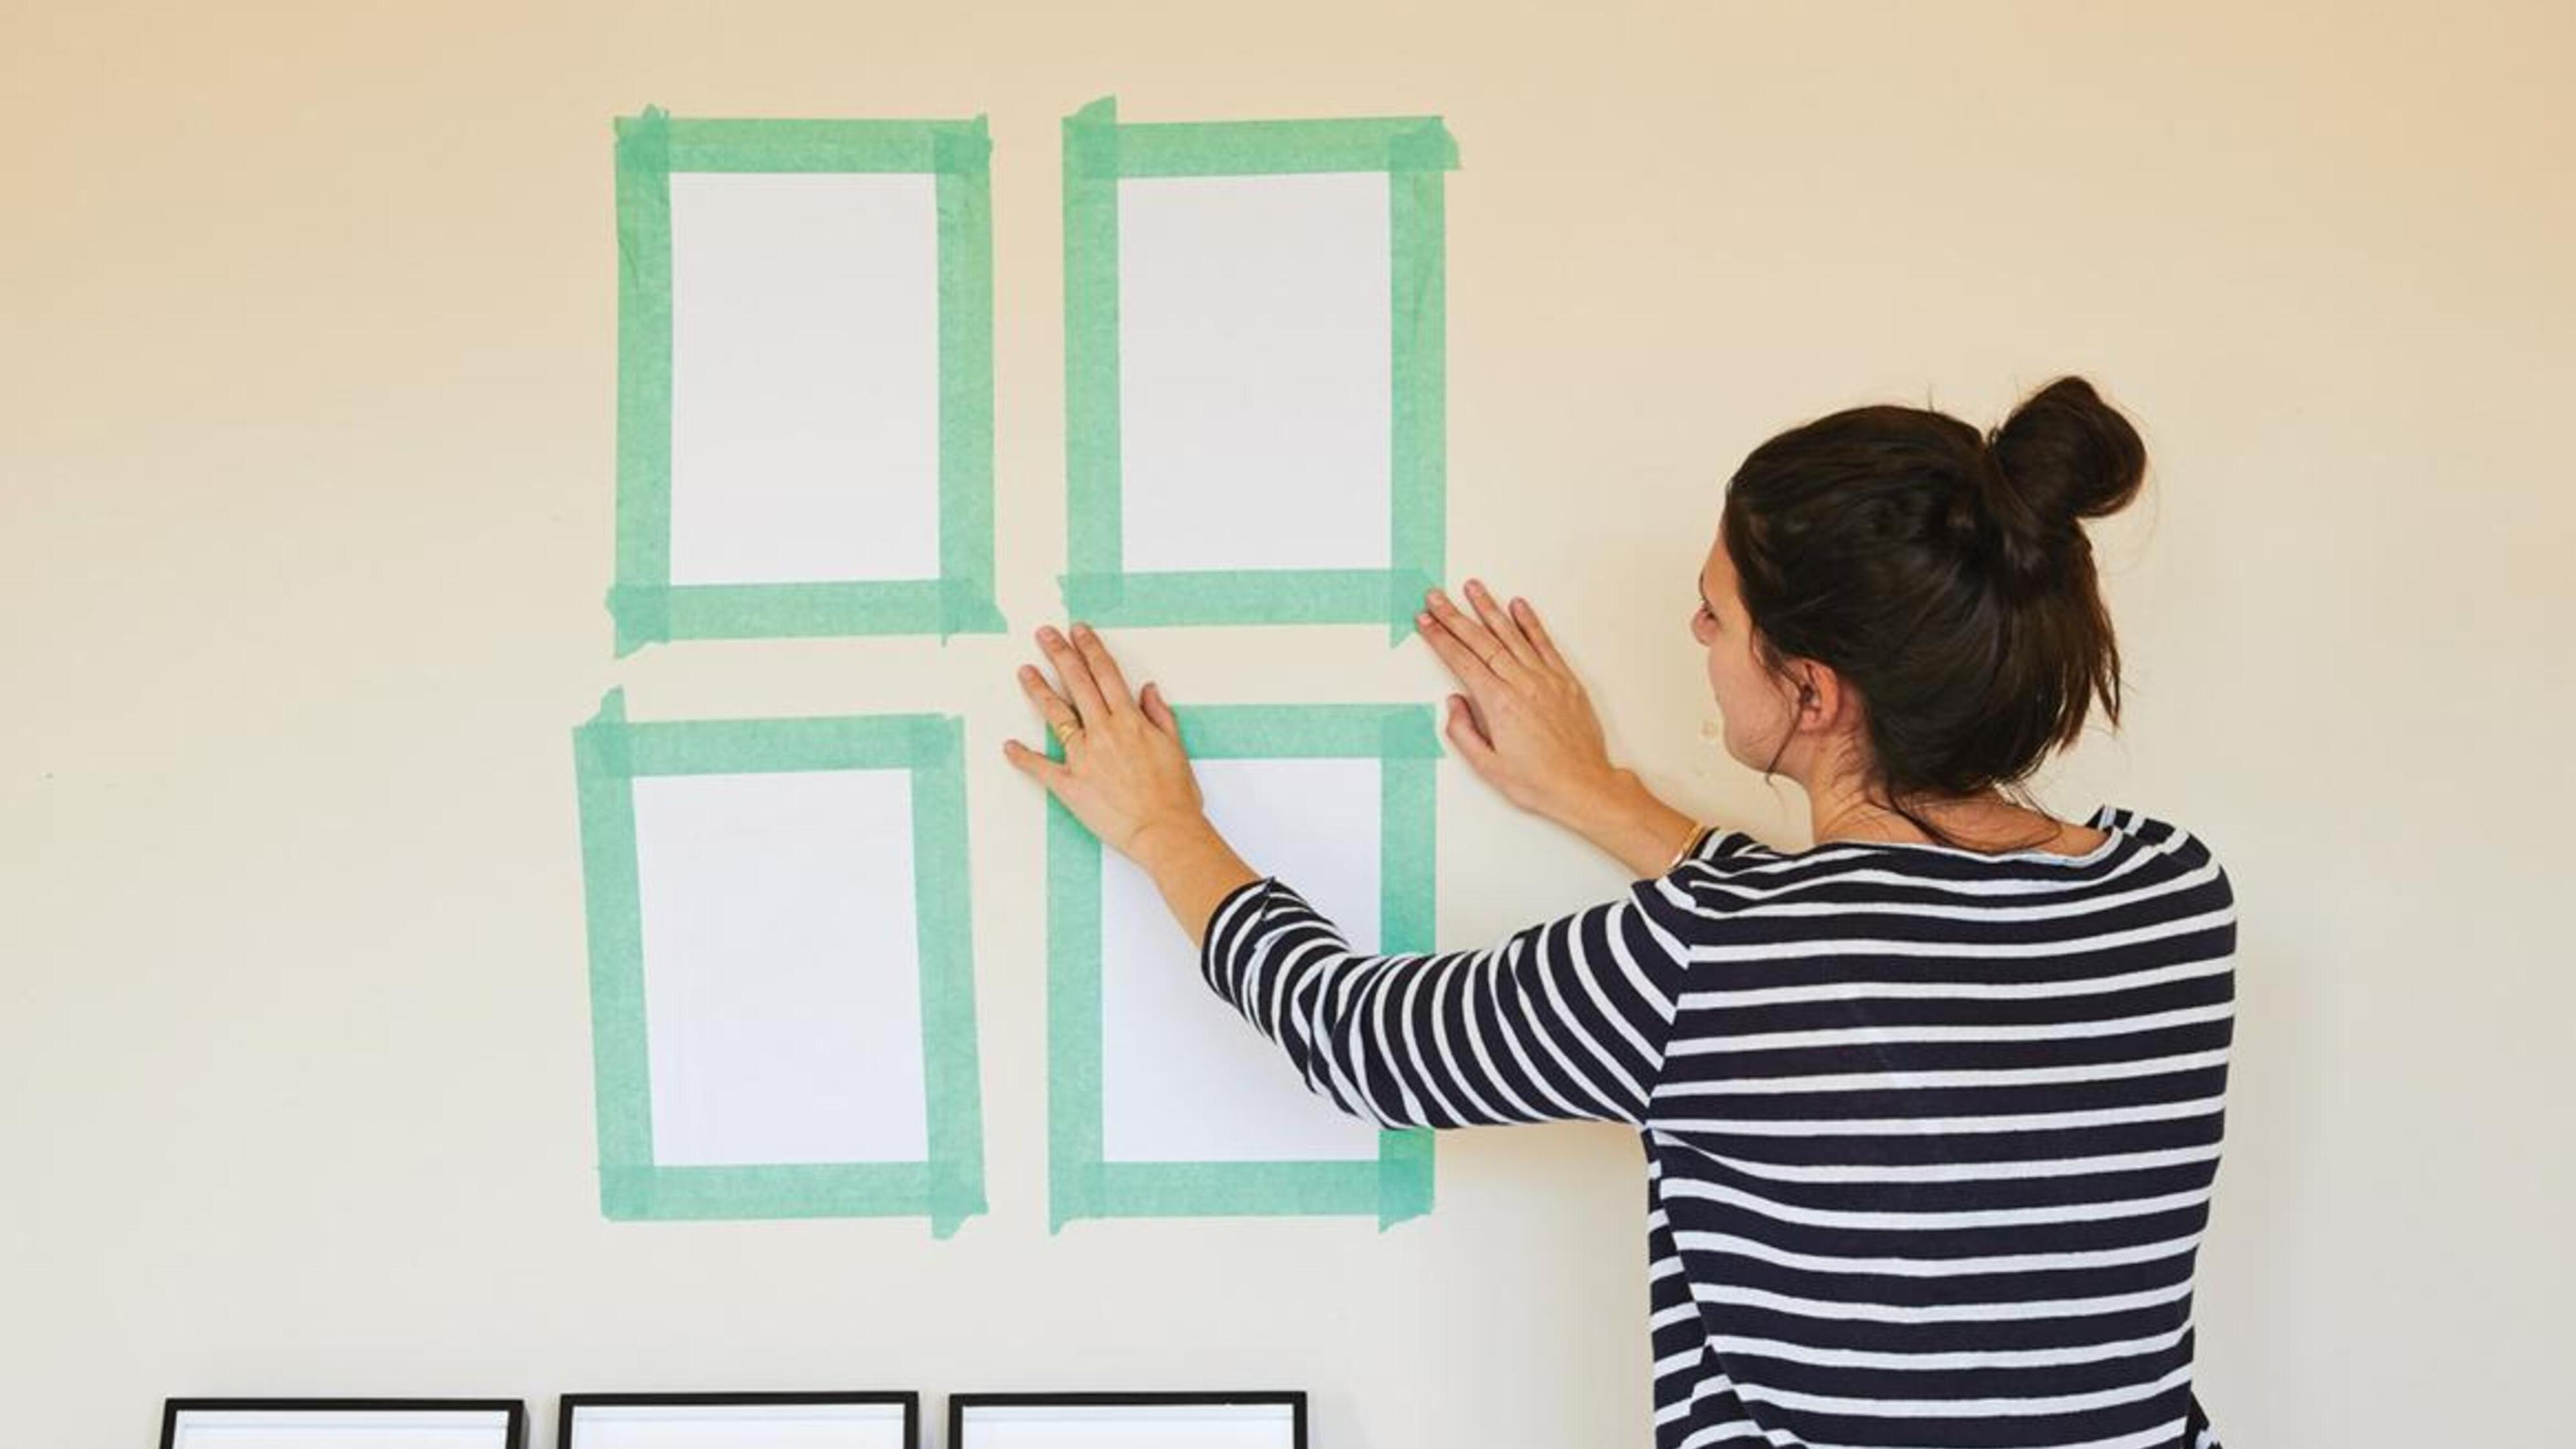 A woman using tape to plan where she will hang the frames.